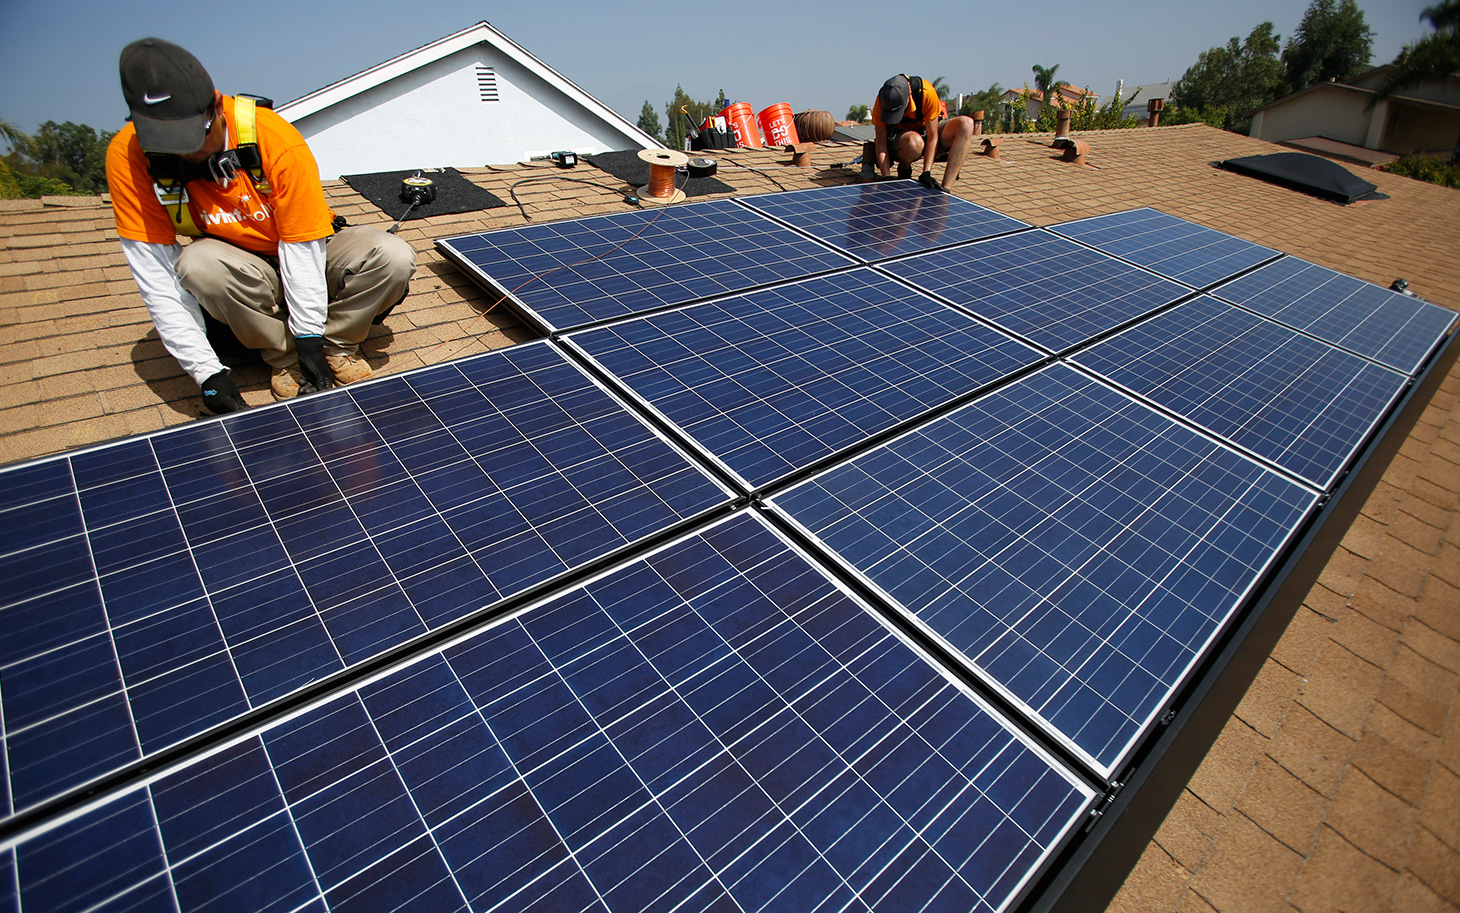 6 Tips To Consider Before Buying A Photovoltaic System